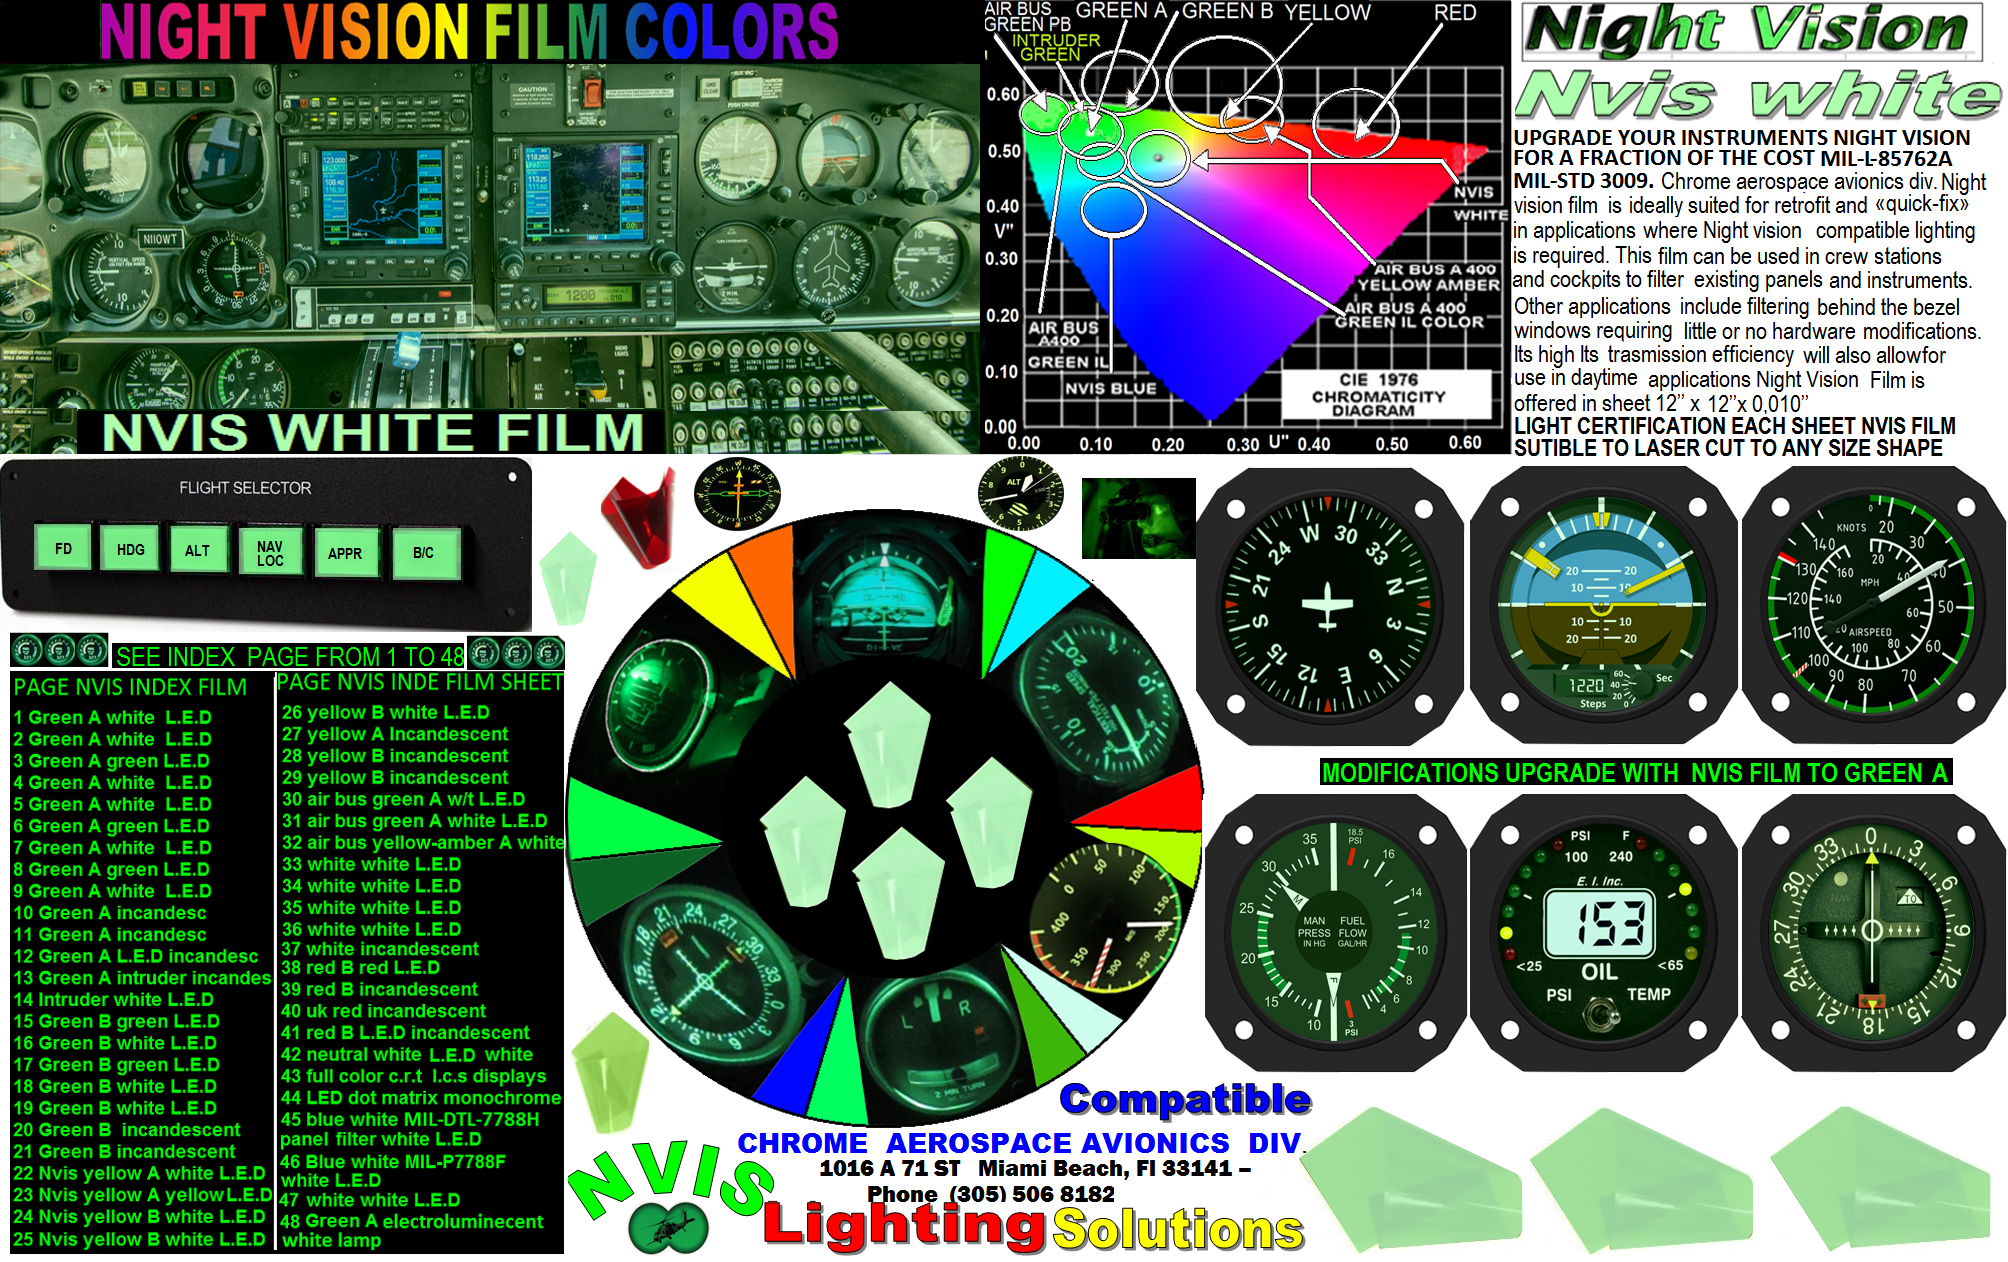 1. NVIS NVIS WHITE FILM UPGRADE CONVERSION INSTRUMENTS 7-11-19 330 SMD PLCC LED 955 SMD PLCC LED 955 SMD PLCC LED 955 LED 955 LED NVIS  955 LED HELICOPTERS NIGHT VISION LIGHTING   955 NVIS FILTER 955 Night Vision Imaging Systems (NVIS)  955 NVIS Aircraft Upgrades | Night Vision Goggles 955 PILOT NIGHT VISION NVIS ILLUMINATION  955 LED SWITCHES, KEYBOARDS, DIALS, AND DISPLAYS 955 COCKPIT MODIFICATION 955 NVIS compatible lights 955 NVIS filters . NVG lighting 955 NVG lighting control panel customized 955 SMD LED  955 NVIS compatible lights  955 NVIS compatible lights CHIP  955 SMD LED NVIS  955 SMD LED NIGHT VISION  955 SMD PLCC LED AVIONICS 955 AVIONICS NIGHT VISION LIGHTING 955 AVIONICS MODIFICATIONS TO NIGHT VISION   955 LED AVIONICS UPGRADES TO NVIS 955 LED NVIS GREEN A 955 IMPACT SOLAR FILTER NVIS 955 LED NVIS GREEN B  955 LED NVIS WHITE  955 LED NVIS RED  955 LED AIRBUS A 400 GREEN 955-001 SMD PLCC LED 955-001 LED   955-001 LED NVIS  955-001 LED HELICOPTERS NIGHT VISION LIGHTING 955-001 NVIS FILTER 955-001 Night Vision Imaging Systems (NVIS) 955-001 PILOT NIGHT VISION NVIS ILLUMINATION  955-001 NVIS Aircraft Upgrades | Night Vision Goggles  955-001 LED SWITCHES, KEYBOARDS, DIALS, AND DISPLAYS 955-001 COCKPIT MODIFICATION  955-001 NVIS compatible lights    955-001 NVIS filters . NVG lighting  955-001 NVG lighting control panel customized   955-001 SMD LED 955-001 NVIS compatible lights  955-001 NVIS compatible lights CHIP 955-001 SMD LED NVIS 955-001 SMD LED NIGHT VISION  955-001 SMD PLCC LED AVIONICS 955-001 AVIONICS NIGHT VISION LIGHTING 955-001 AVIONICS MODIFICATIONS TO NIGHT VISION 955-001 LED AVIONICS UPGRADES TO NVIS 955-001 LED NVIS GREEN A 955-001 IMPACT SOLAR FILTER NVIS 955-001 LED NVIS GREEN B 955-001 LED NVIS WHITE 955-001 LED NVIS RED 955-001 LED AIRBUS A 400 GREEN  670 SMD LED 670 NVG lighting control panel customized  670 NVIS filters . NVG lighting